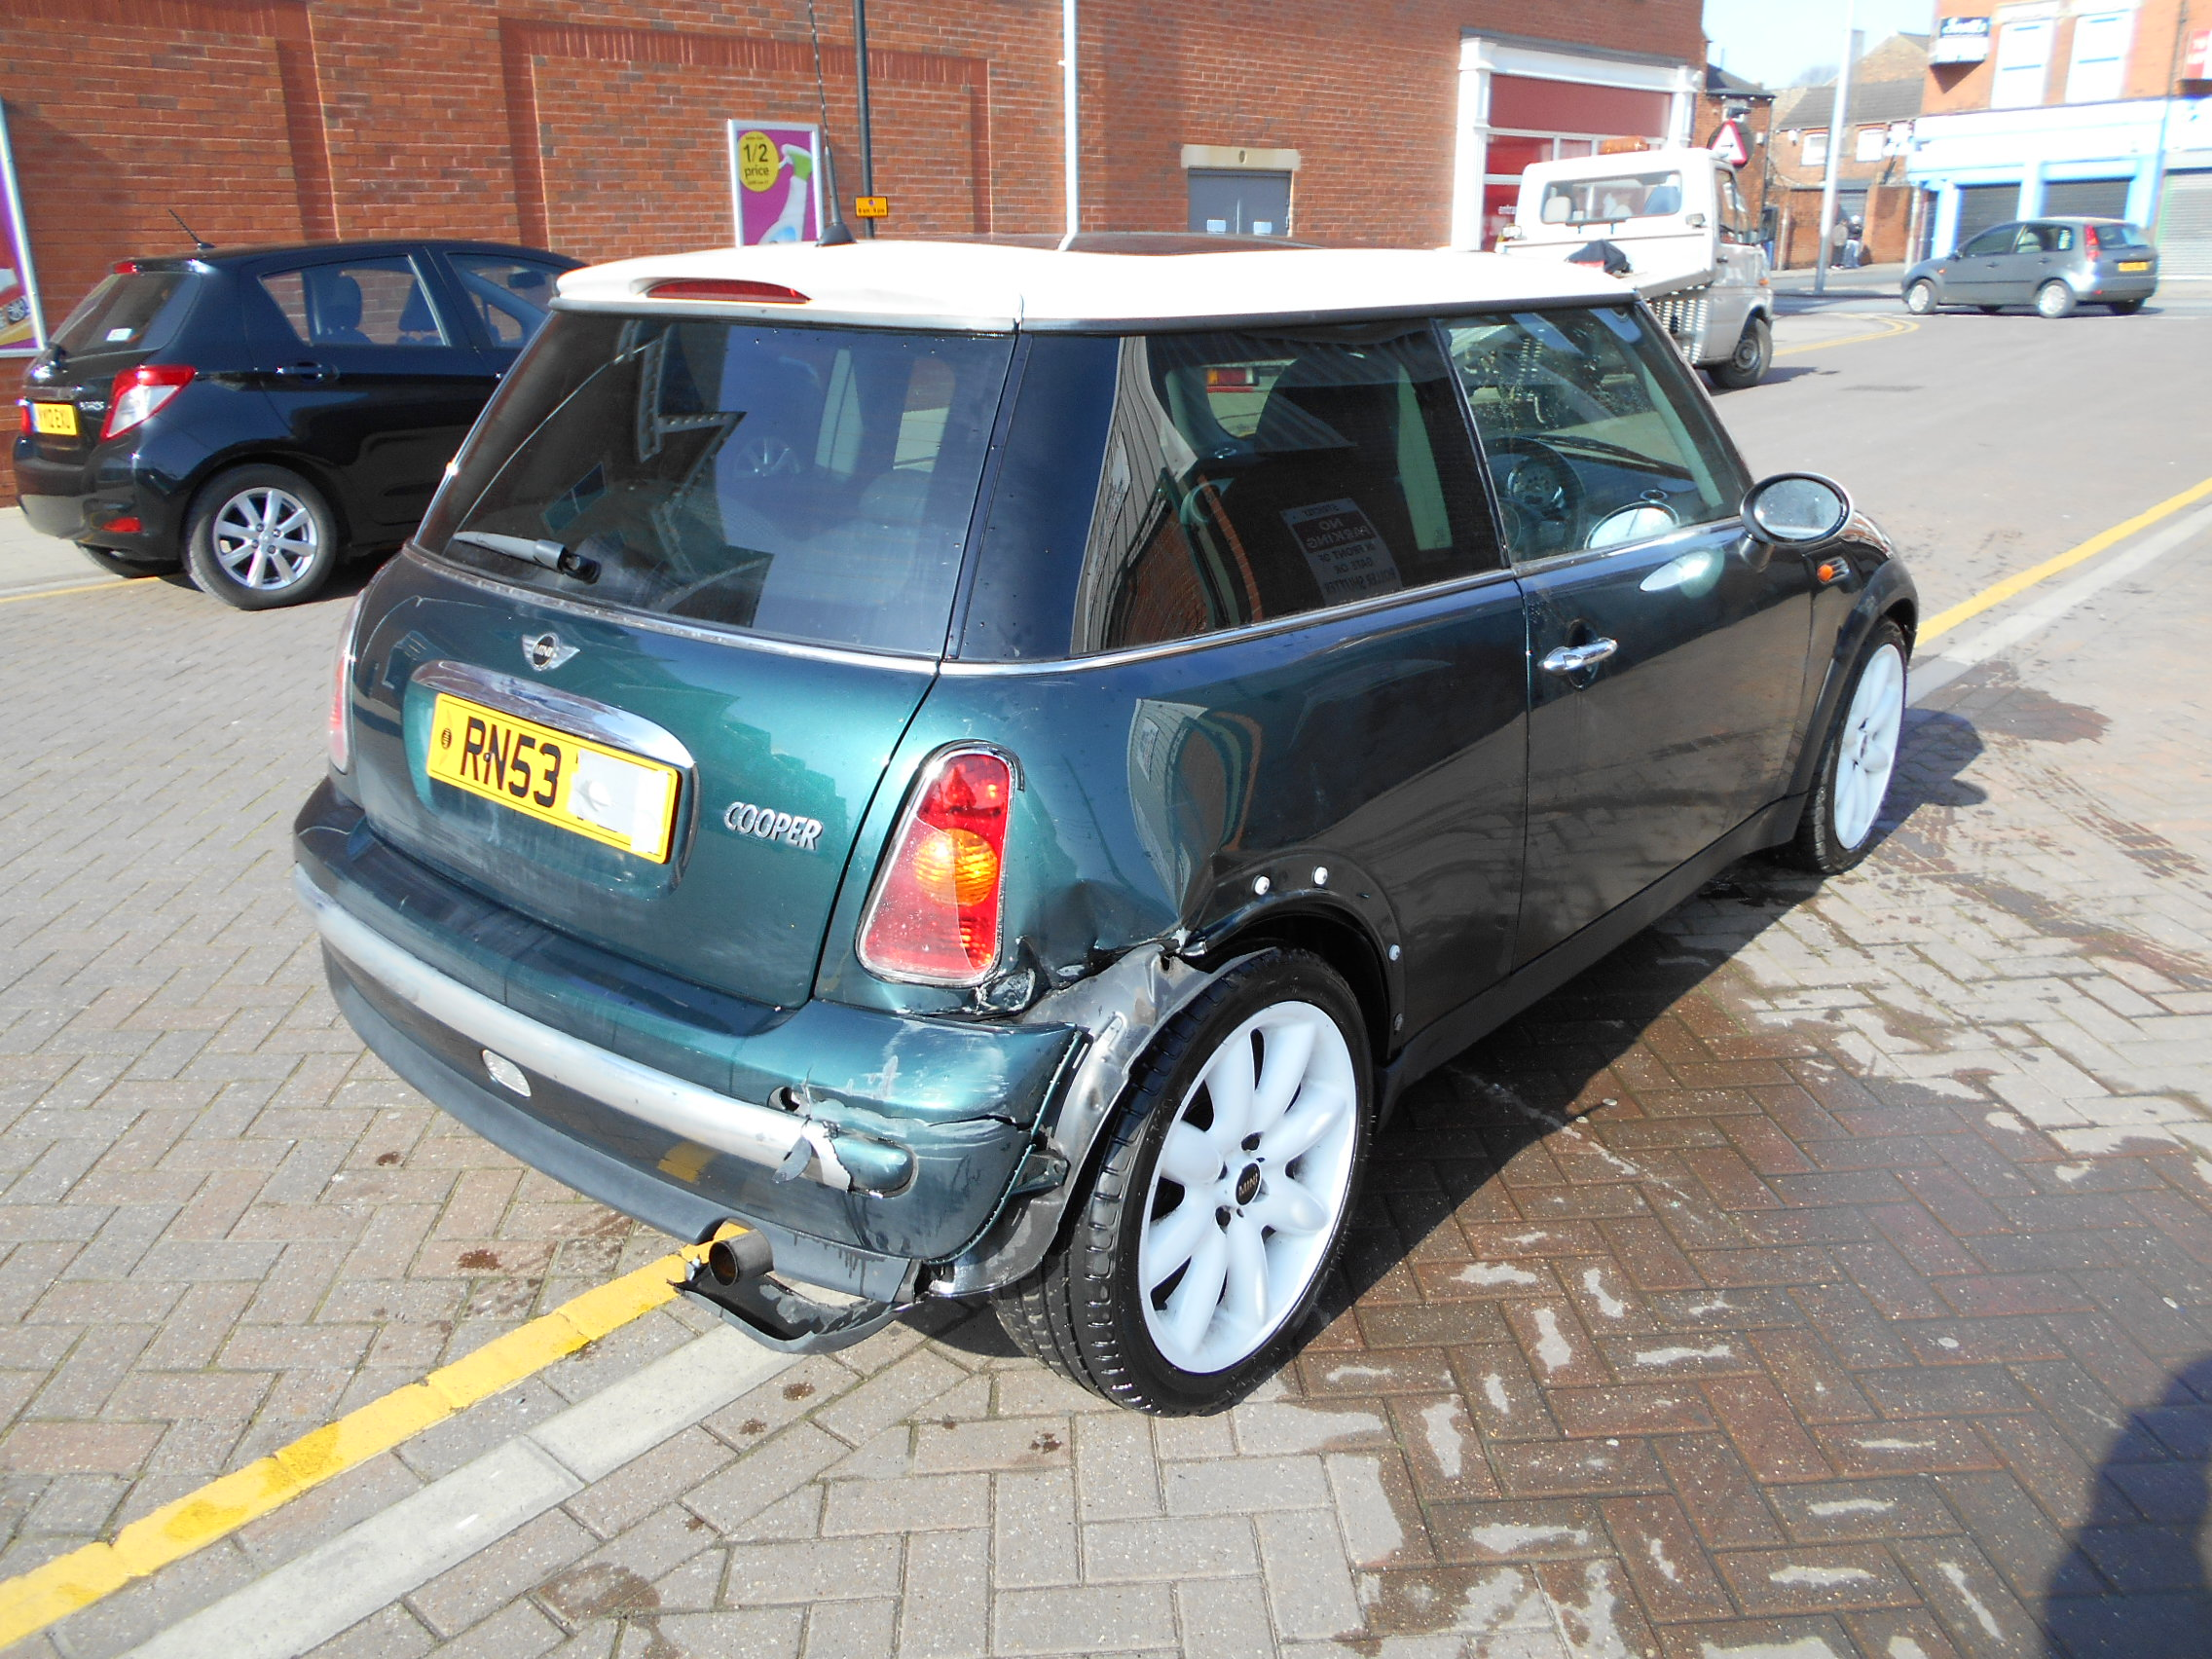 03 Green 1.6 BMW Mini Cooper - 4